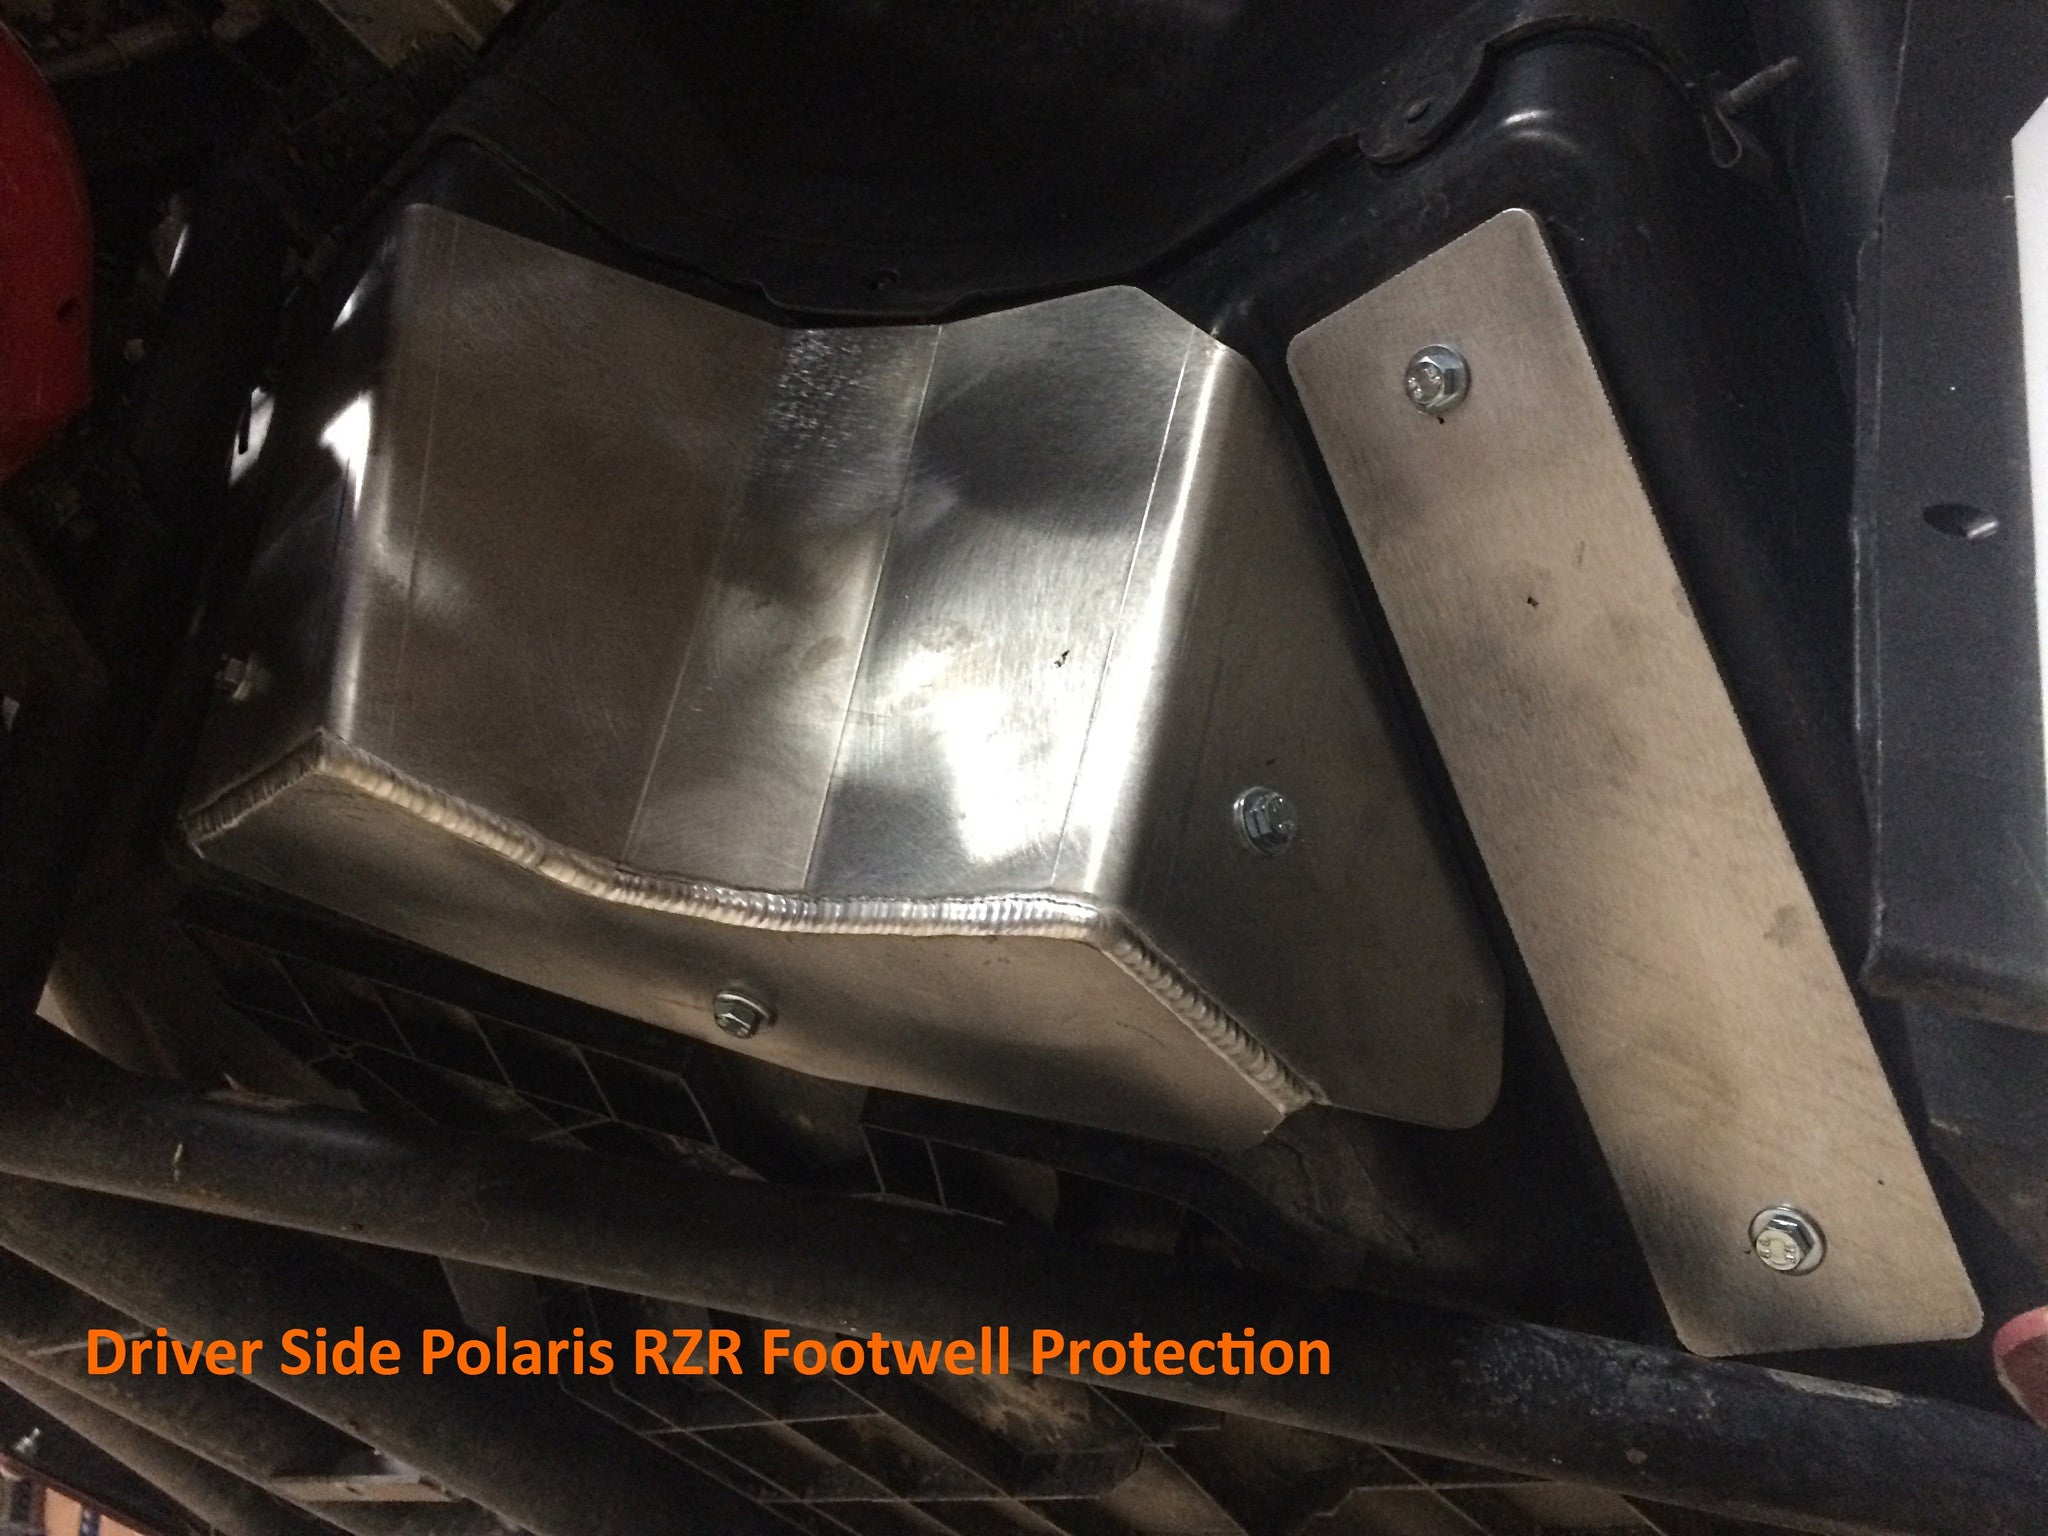 2-Piece Footwell Skid Plate Set, Polaris RZR 900 XC